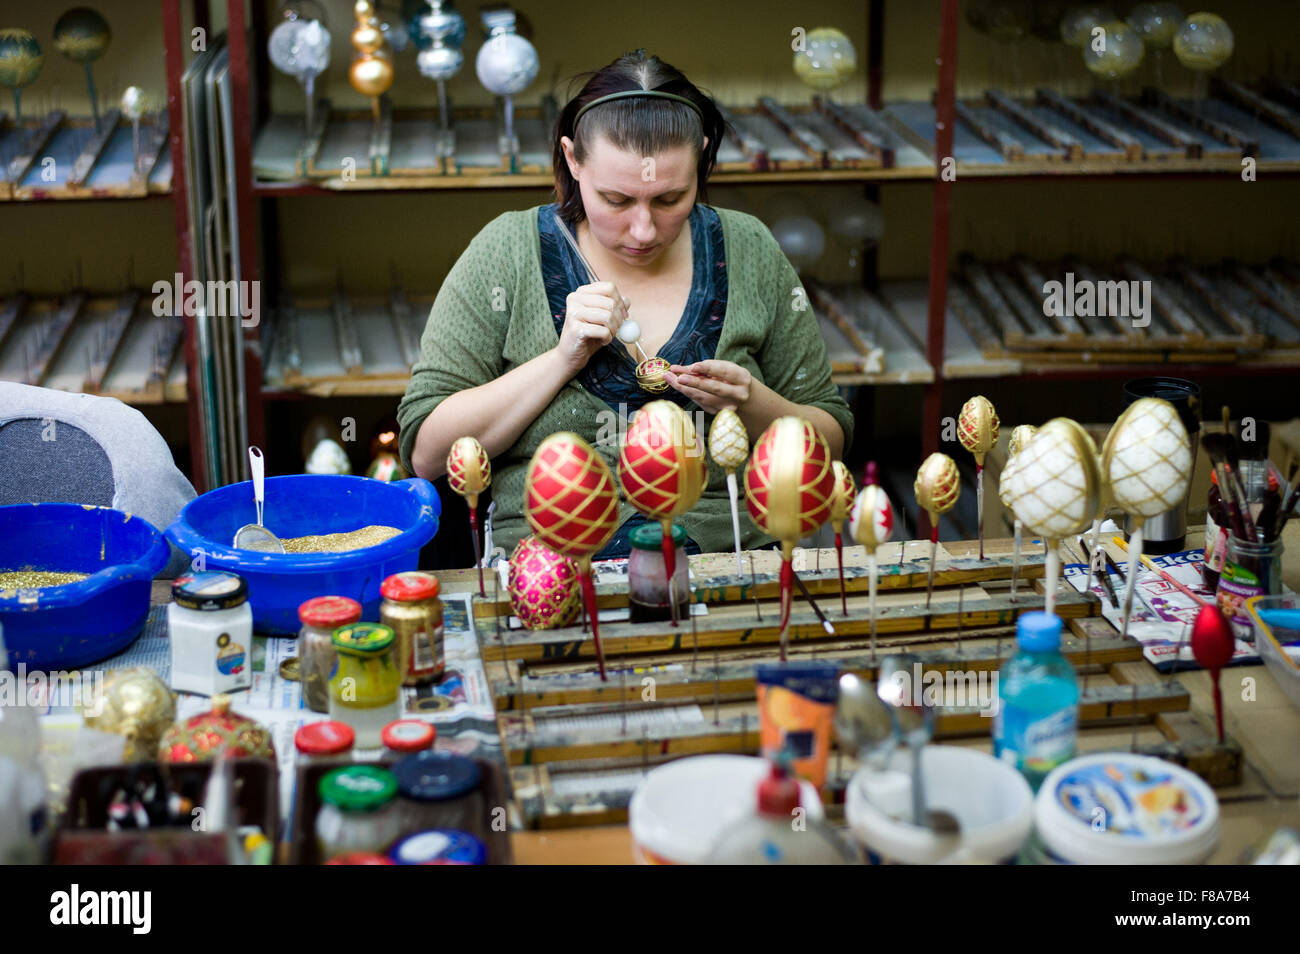 Piotrkow Trybunalski, Poland. 7th December, 2015. Worker decorates Christmas ball at 'Szkło-Decor' (Glass - Stock Image